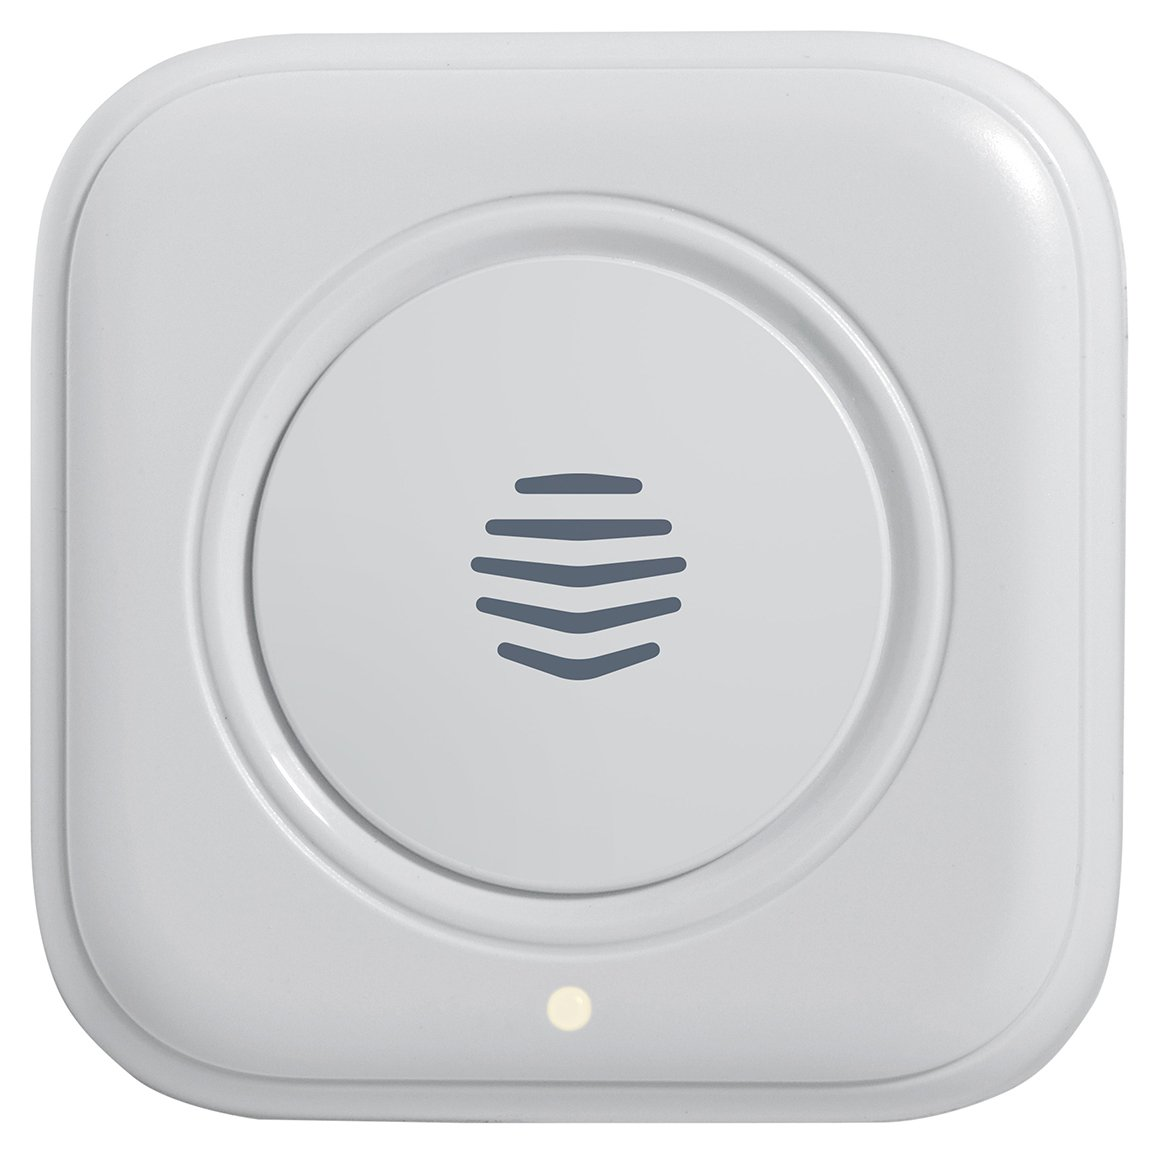 Hive Signal Booster Wi-Fi Range Extender